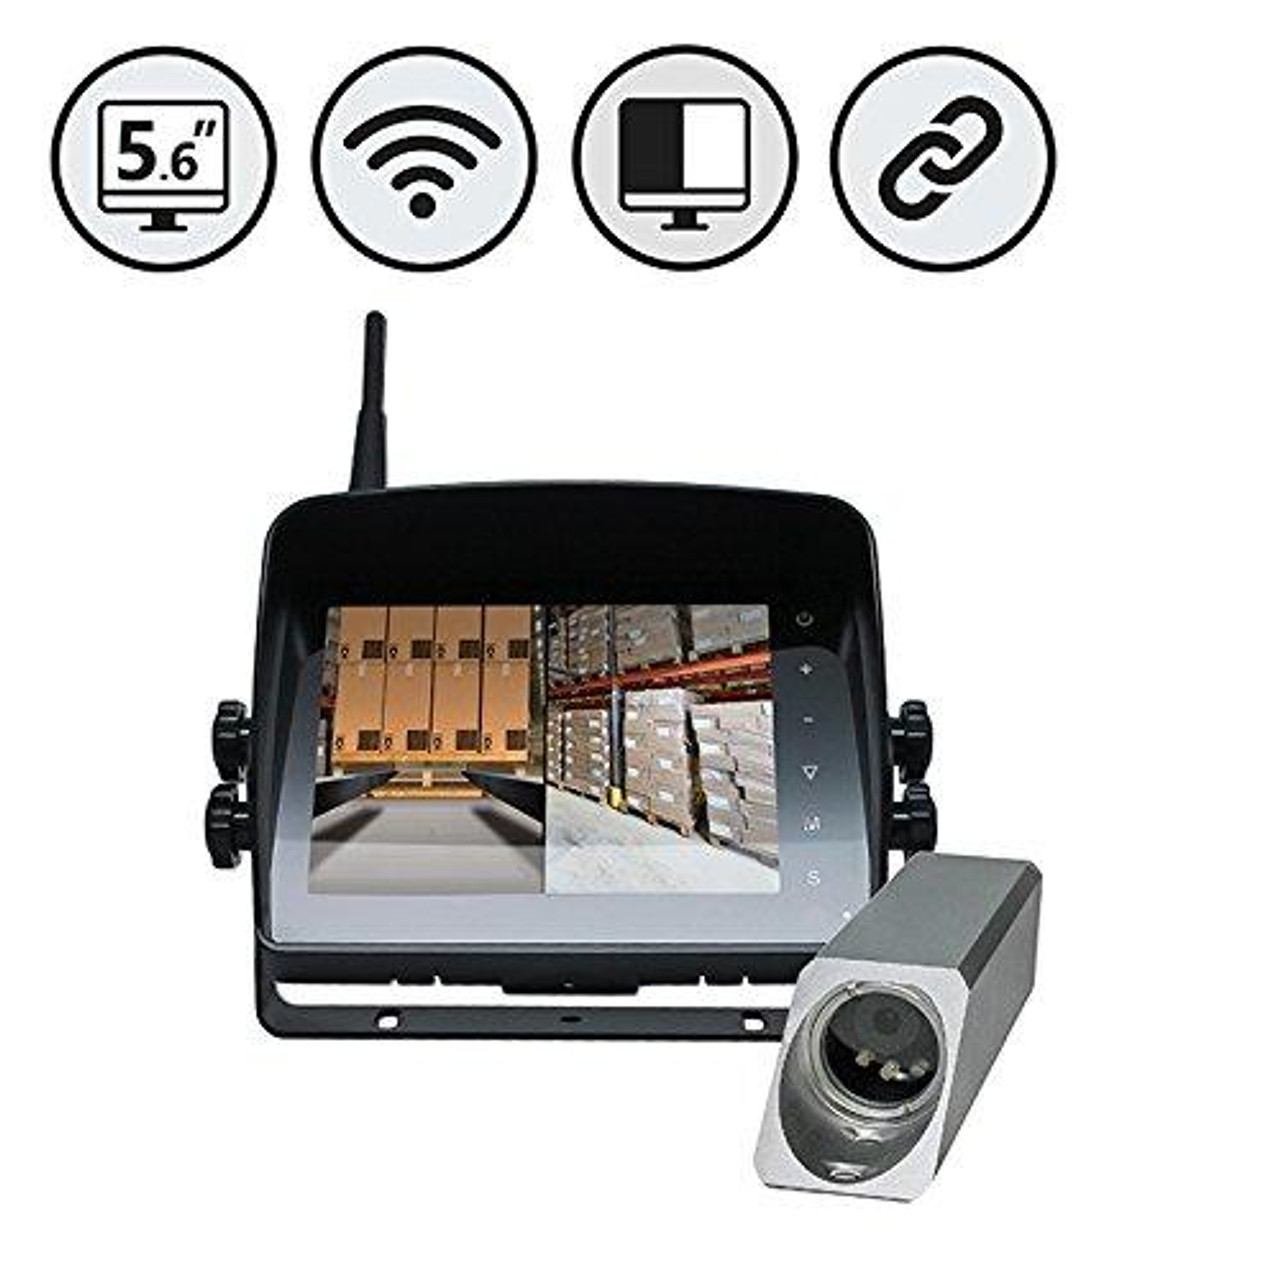 "5.6"" Wireless Monitor, Wireless Forklift Camera"